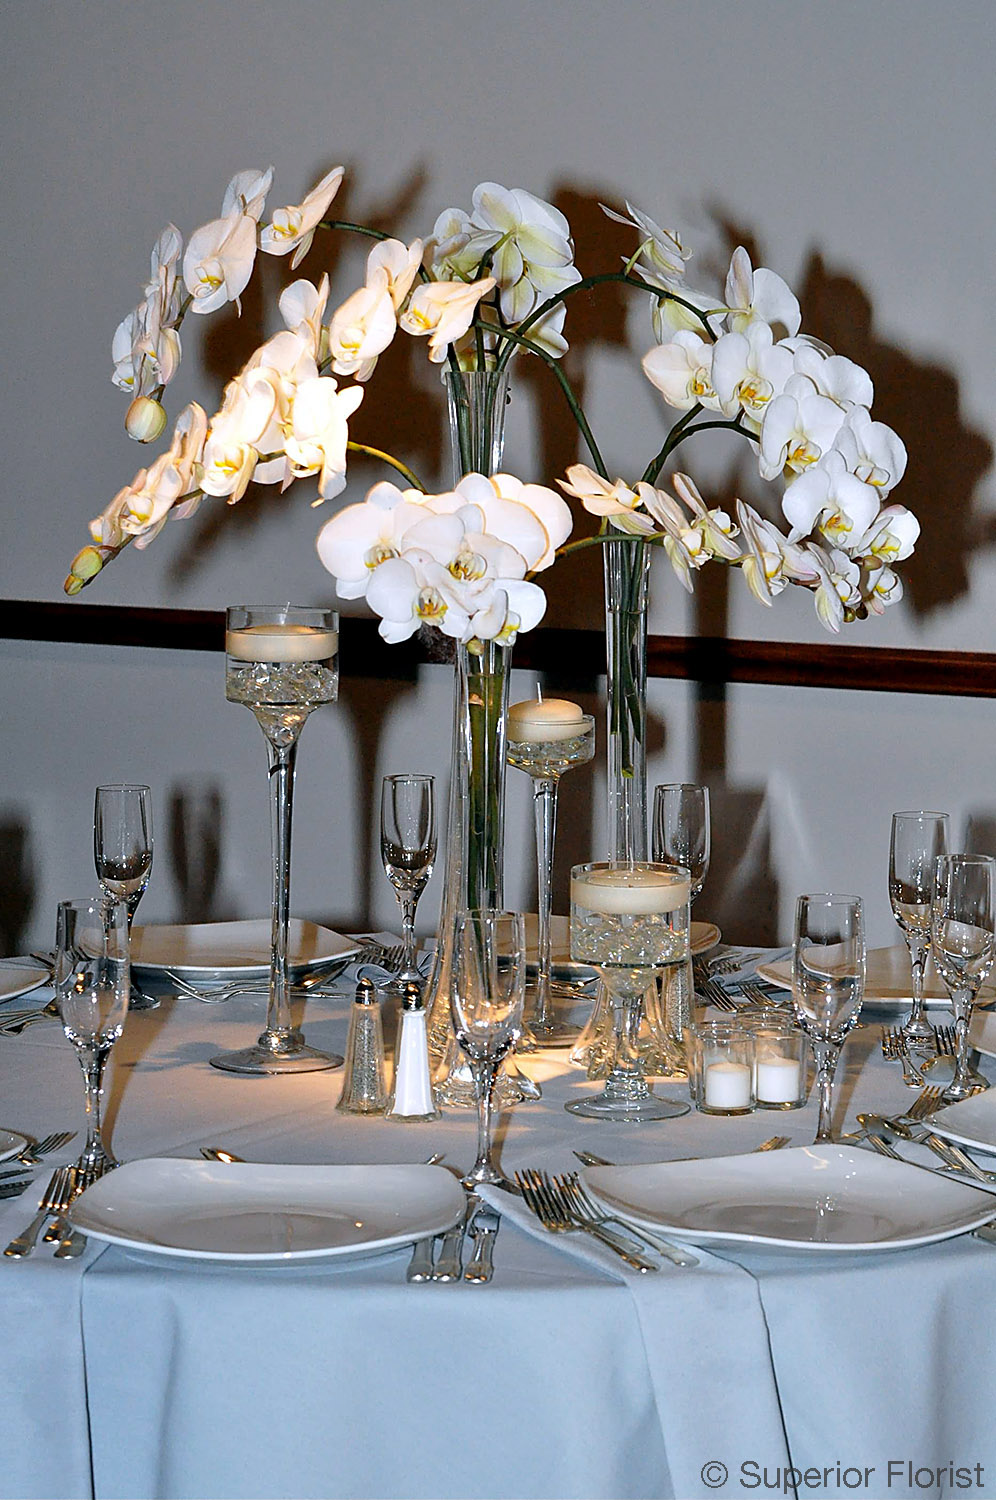 Superior Florist – Centerpieces:  Three tower glass vases with cascading Phalaenopsis orchids, candleholders with floating candles.